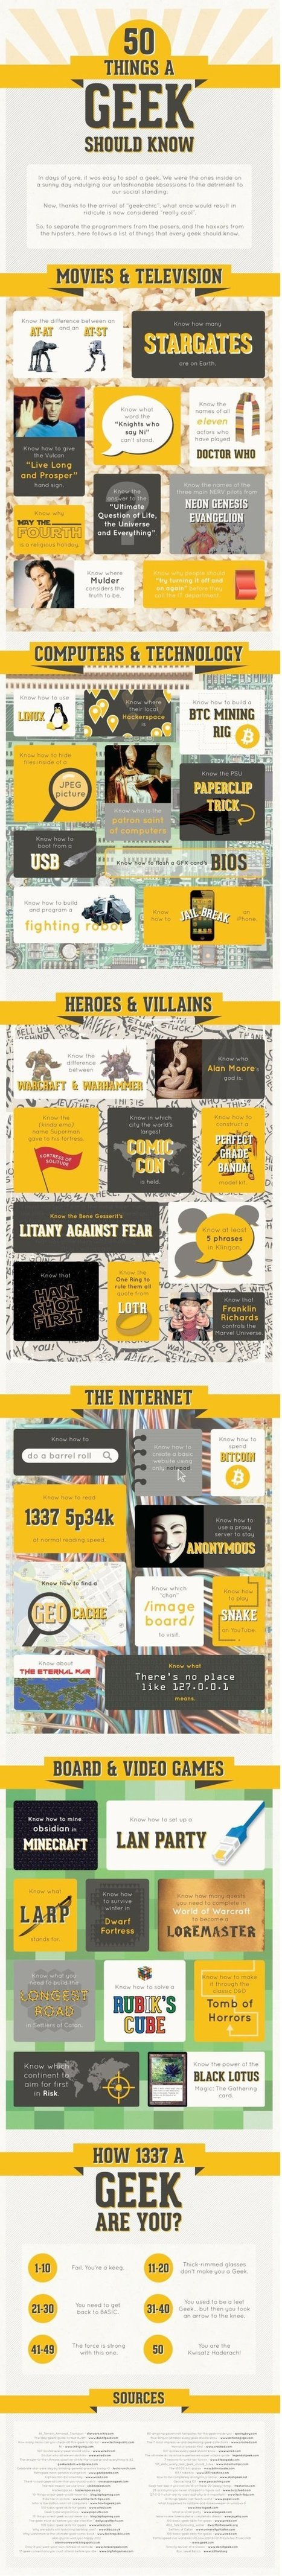 50 Things a Geek Should (Apparently) Know [Infographic] | AileR | Scoop.it